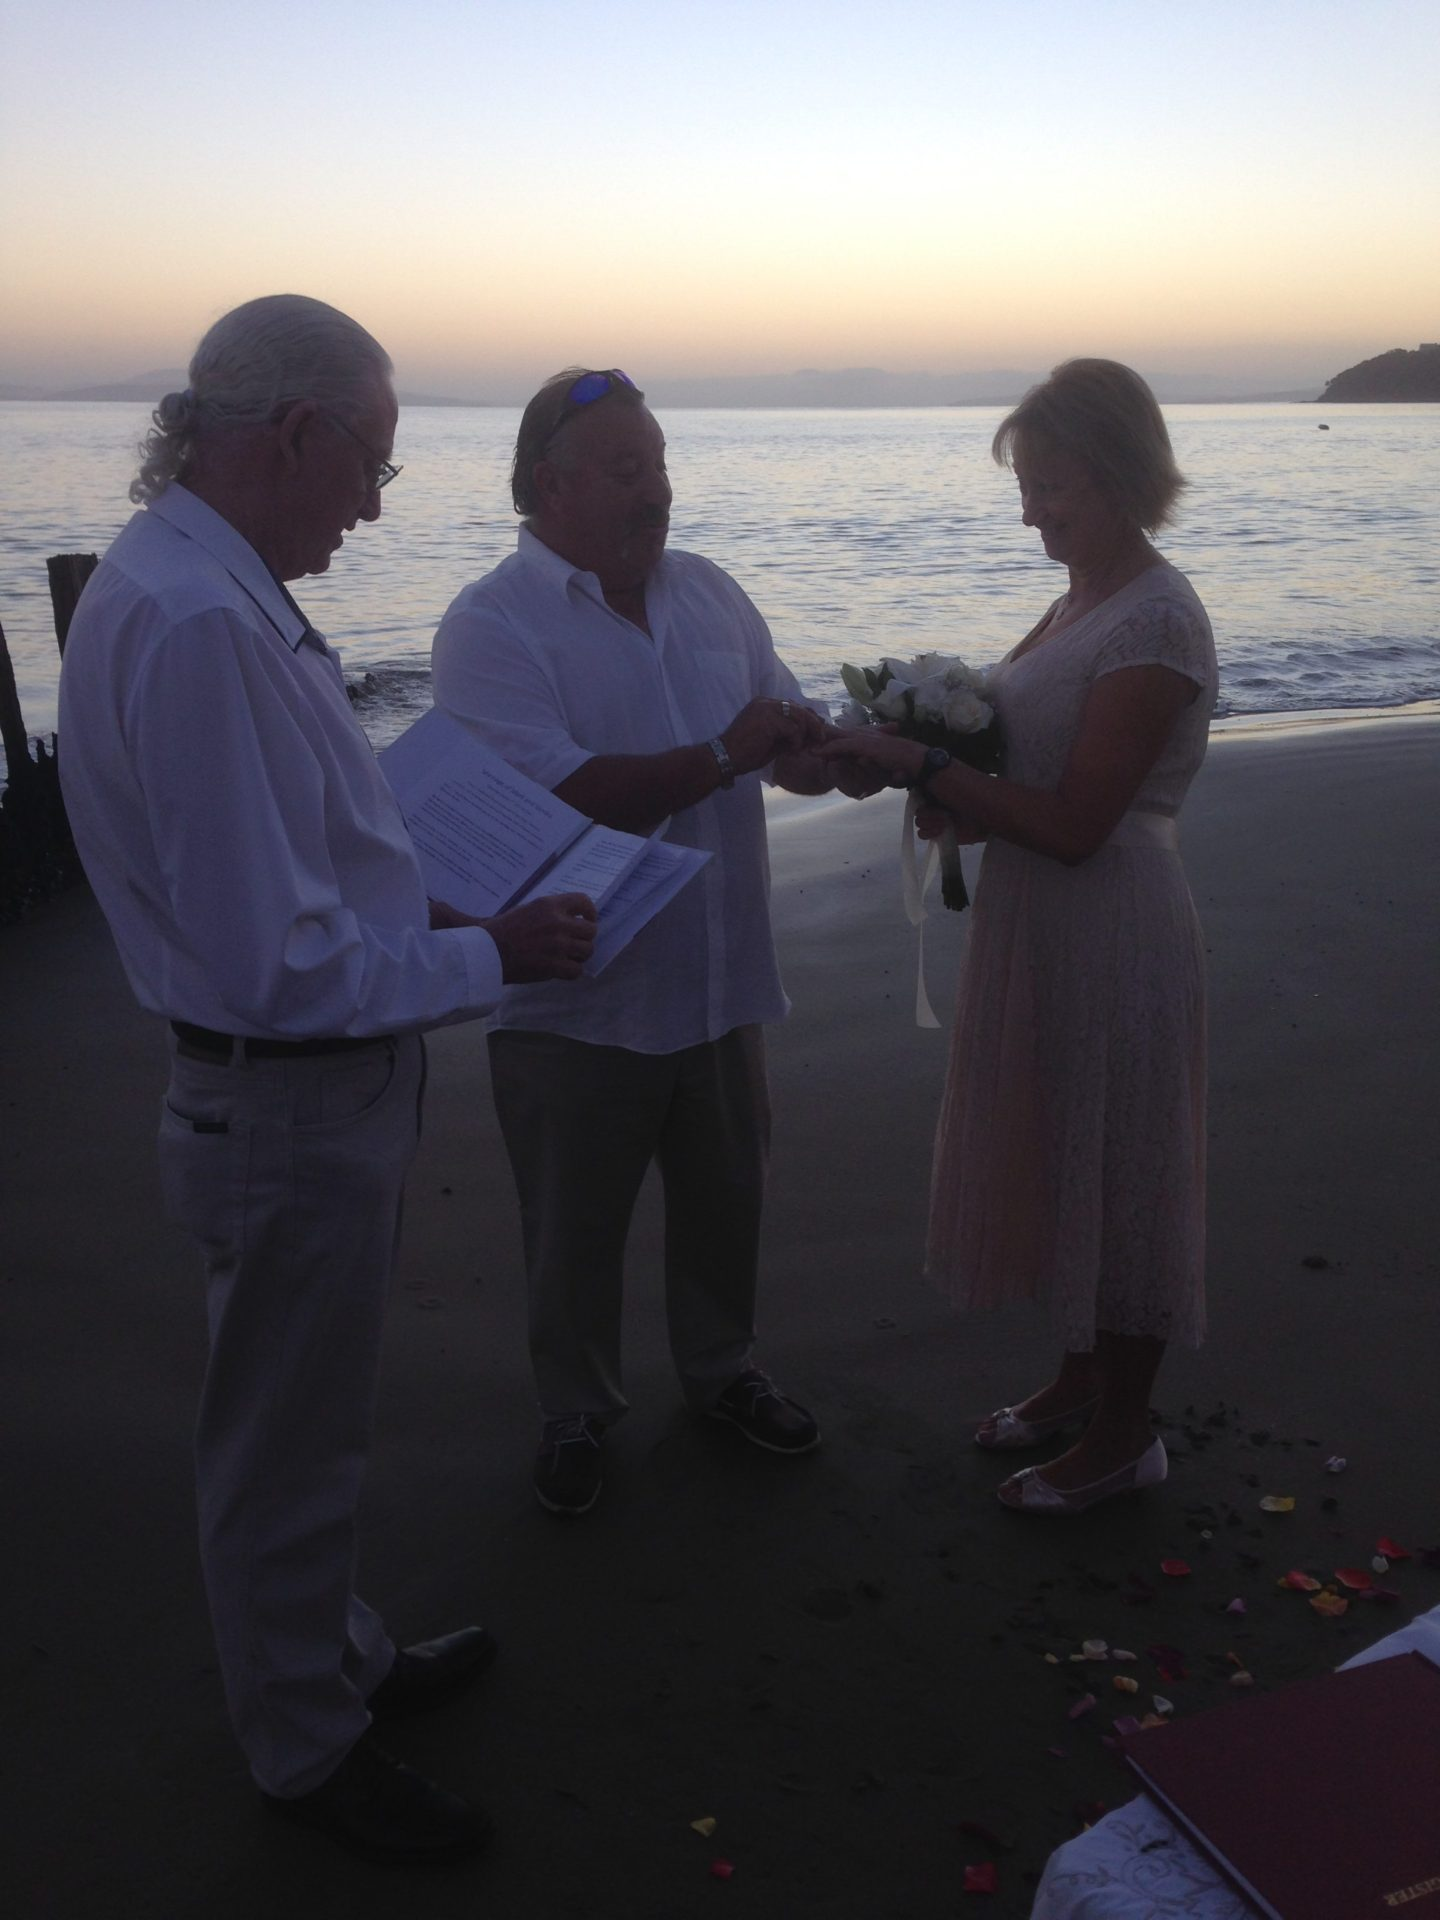 Wedding Pictures By A Marriage Celebrant In Hobart Tasmania